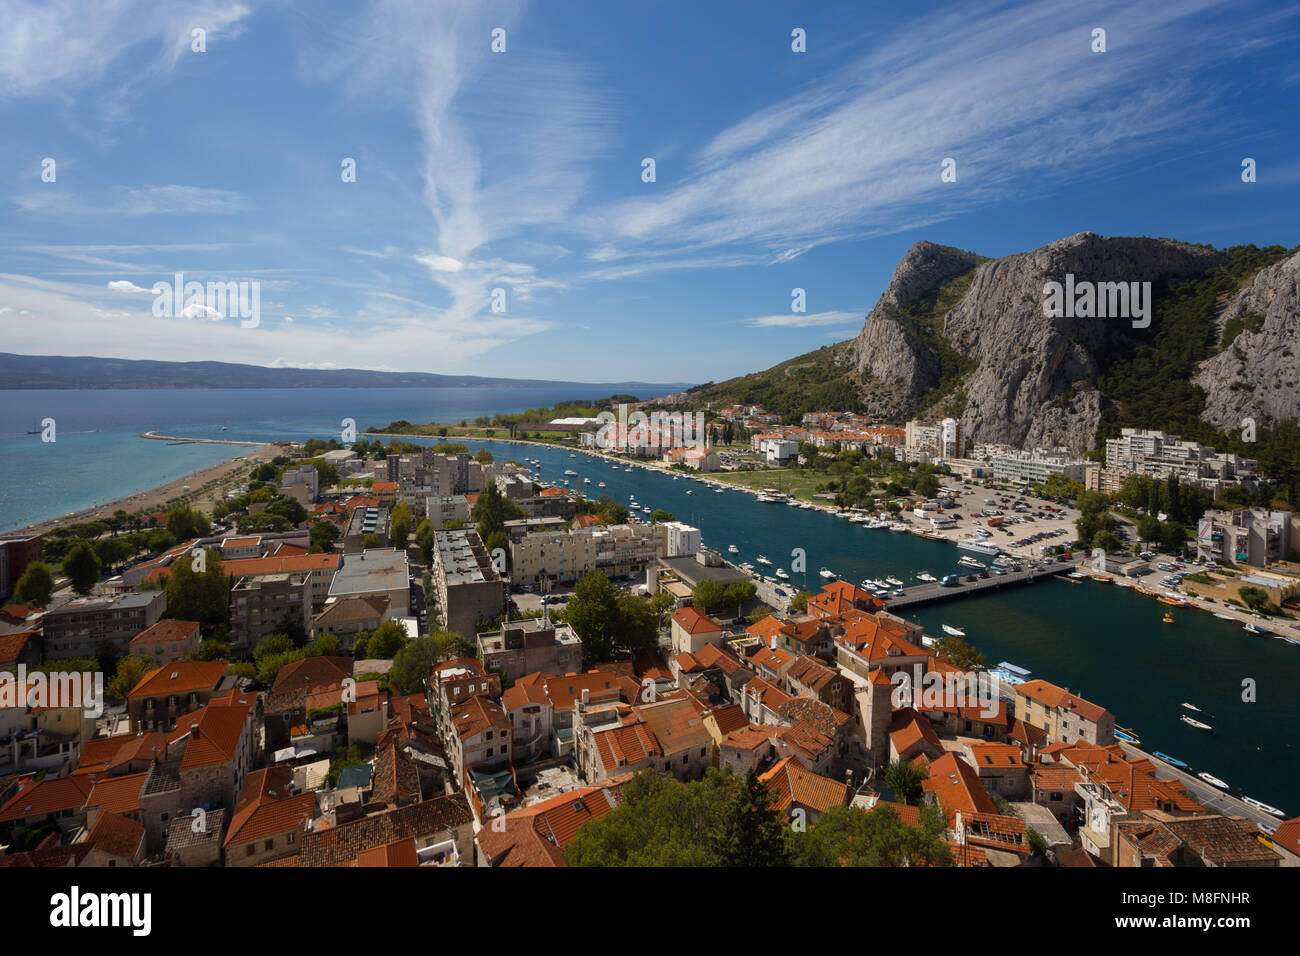 Omis town and river Cetina delta by day, Croatia - Stock Image